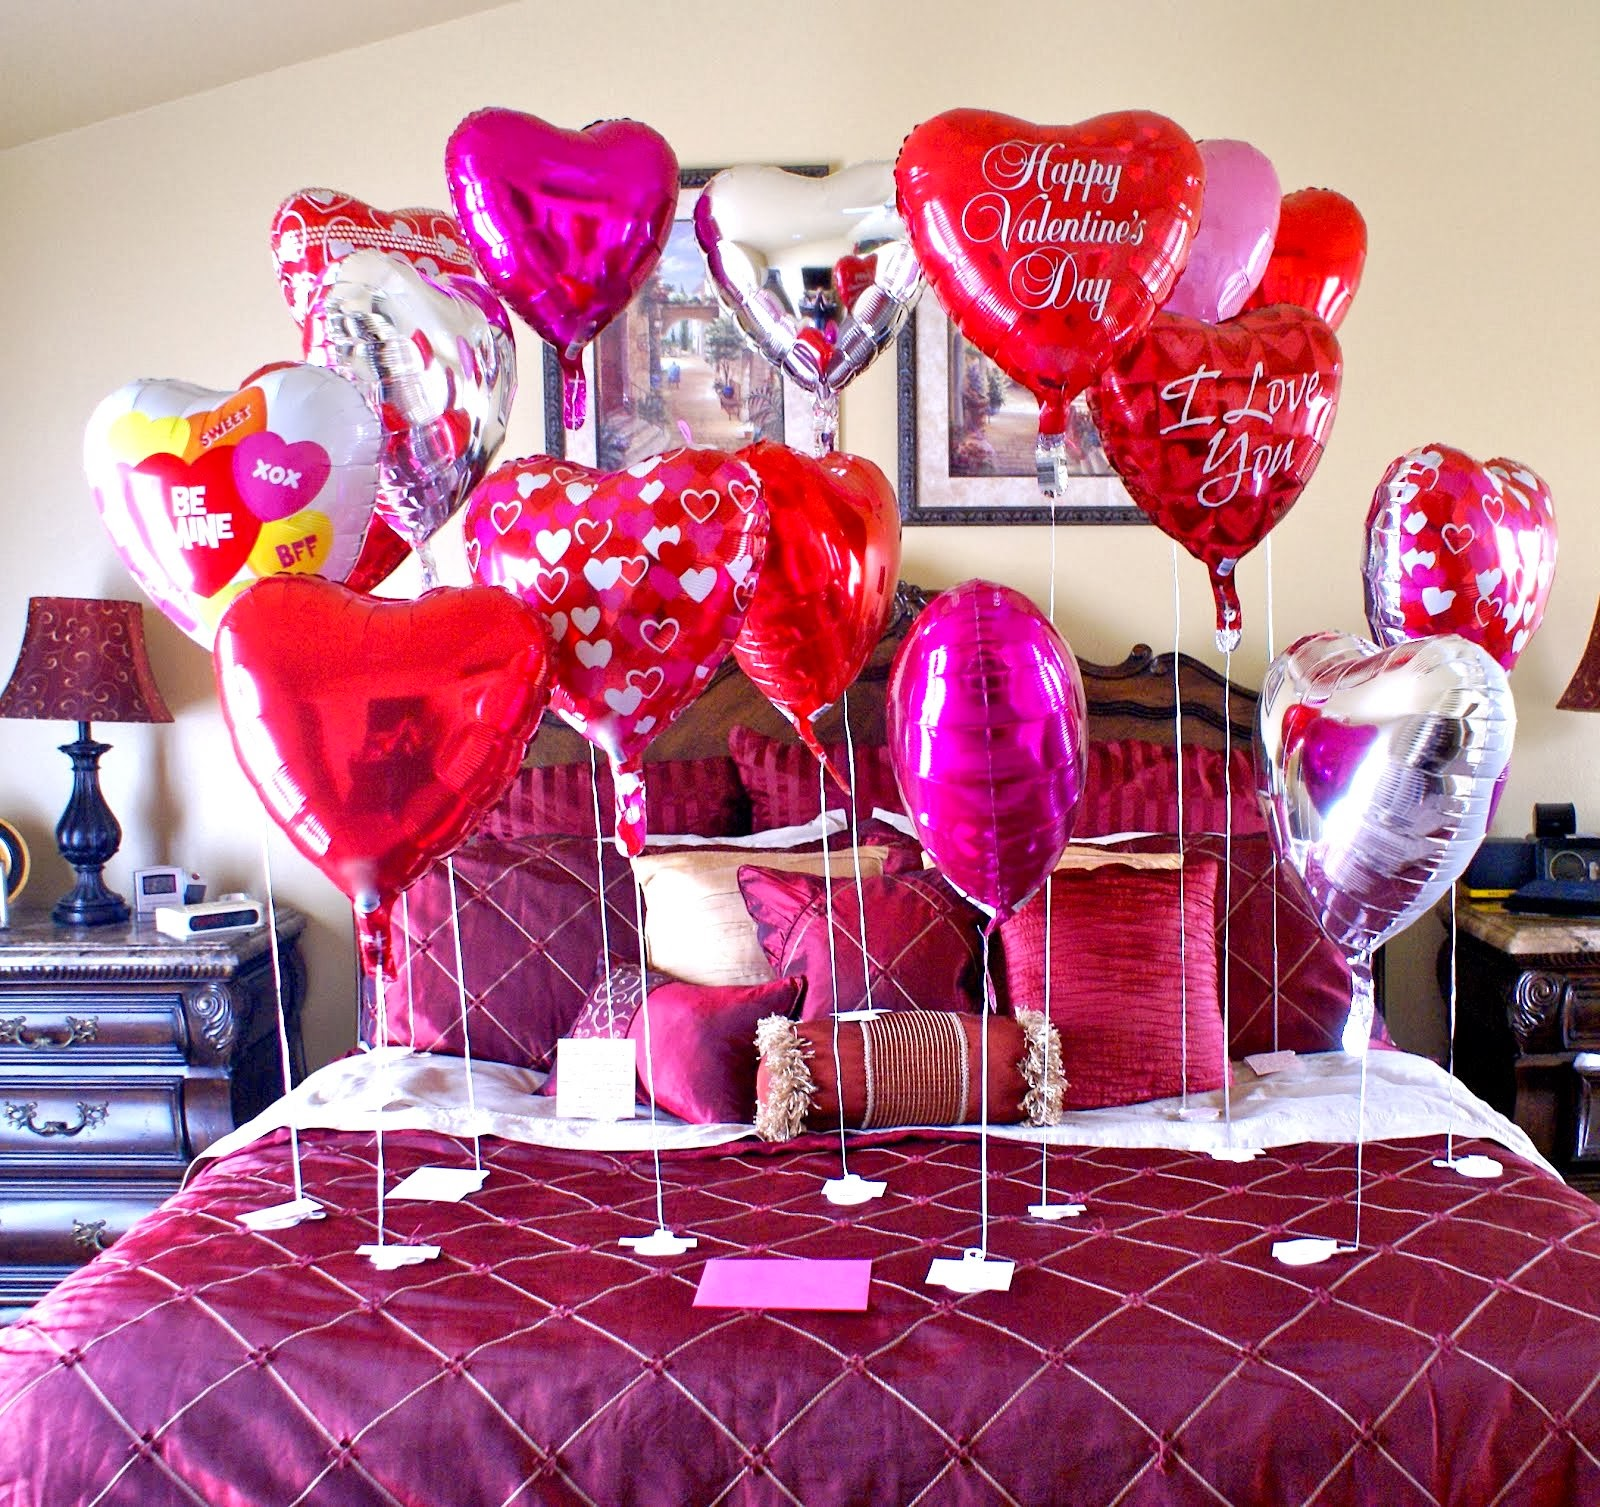 SOMETHING SPECIAL TO YOU Malaysia Wedding One-stop Shop: Valentine's Day  Balloon & Gift Delivery